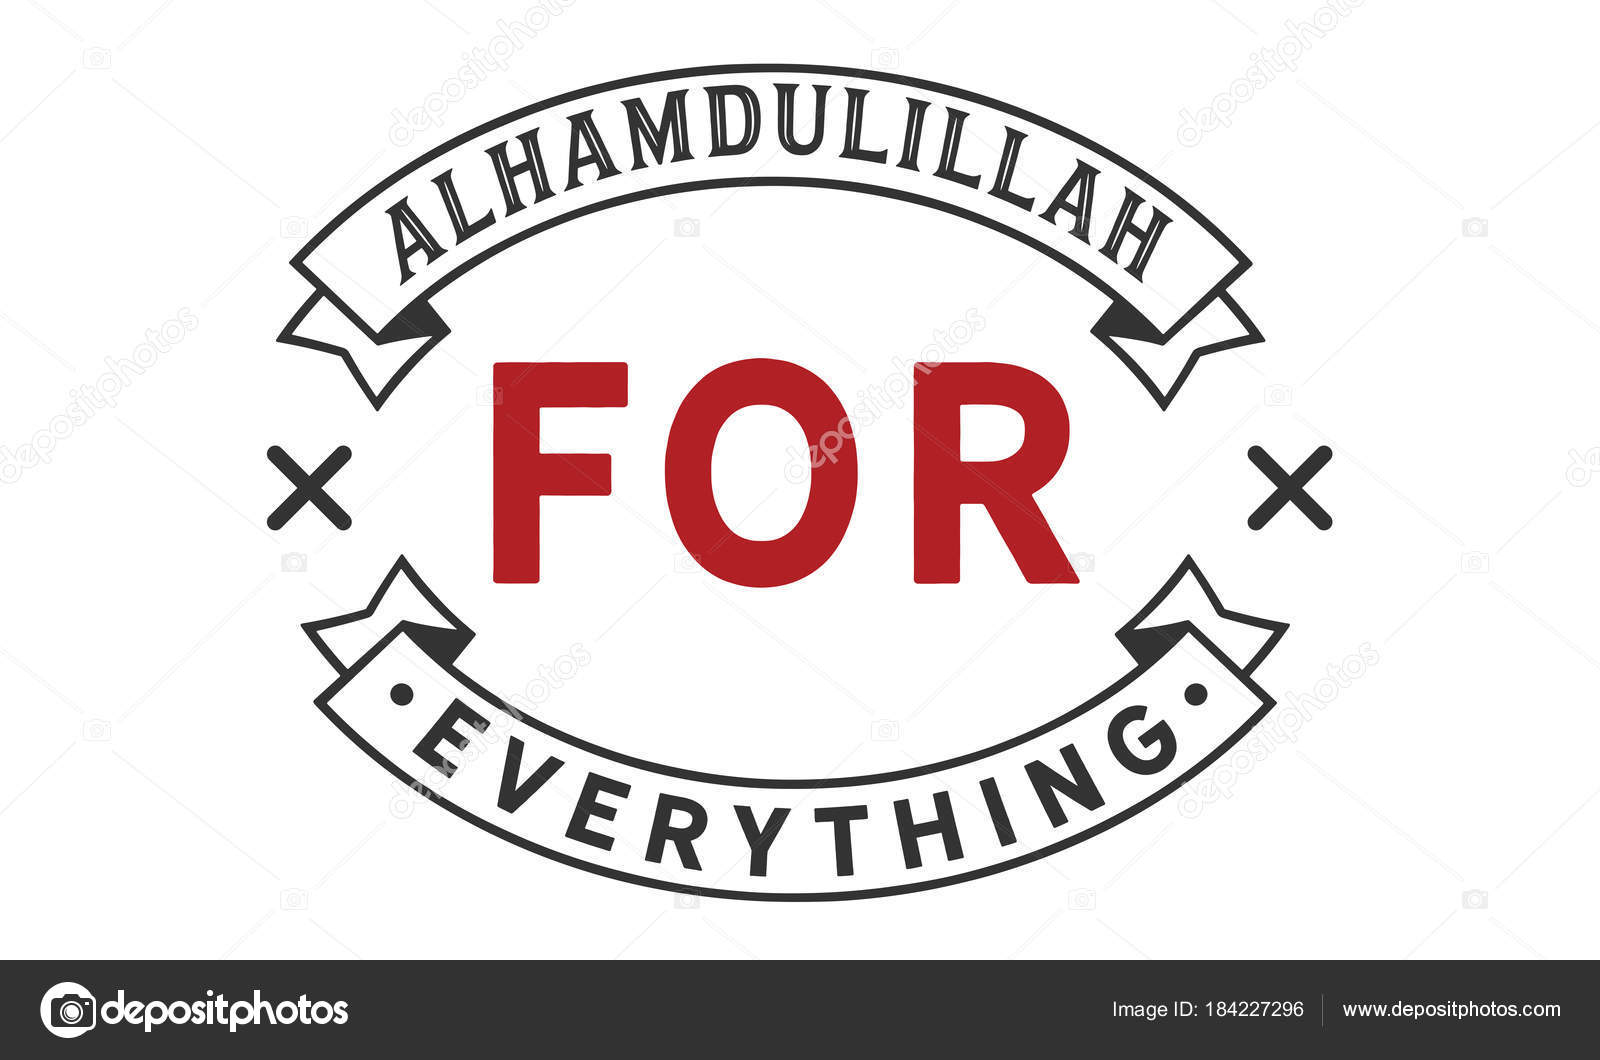 Alhamdulillah everything logo quote vector stock vector alhamdulillah for everything logo quote vector vector by uguhime buycottarizona Image collections